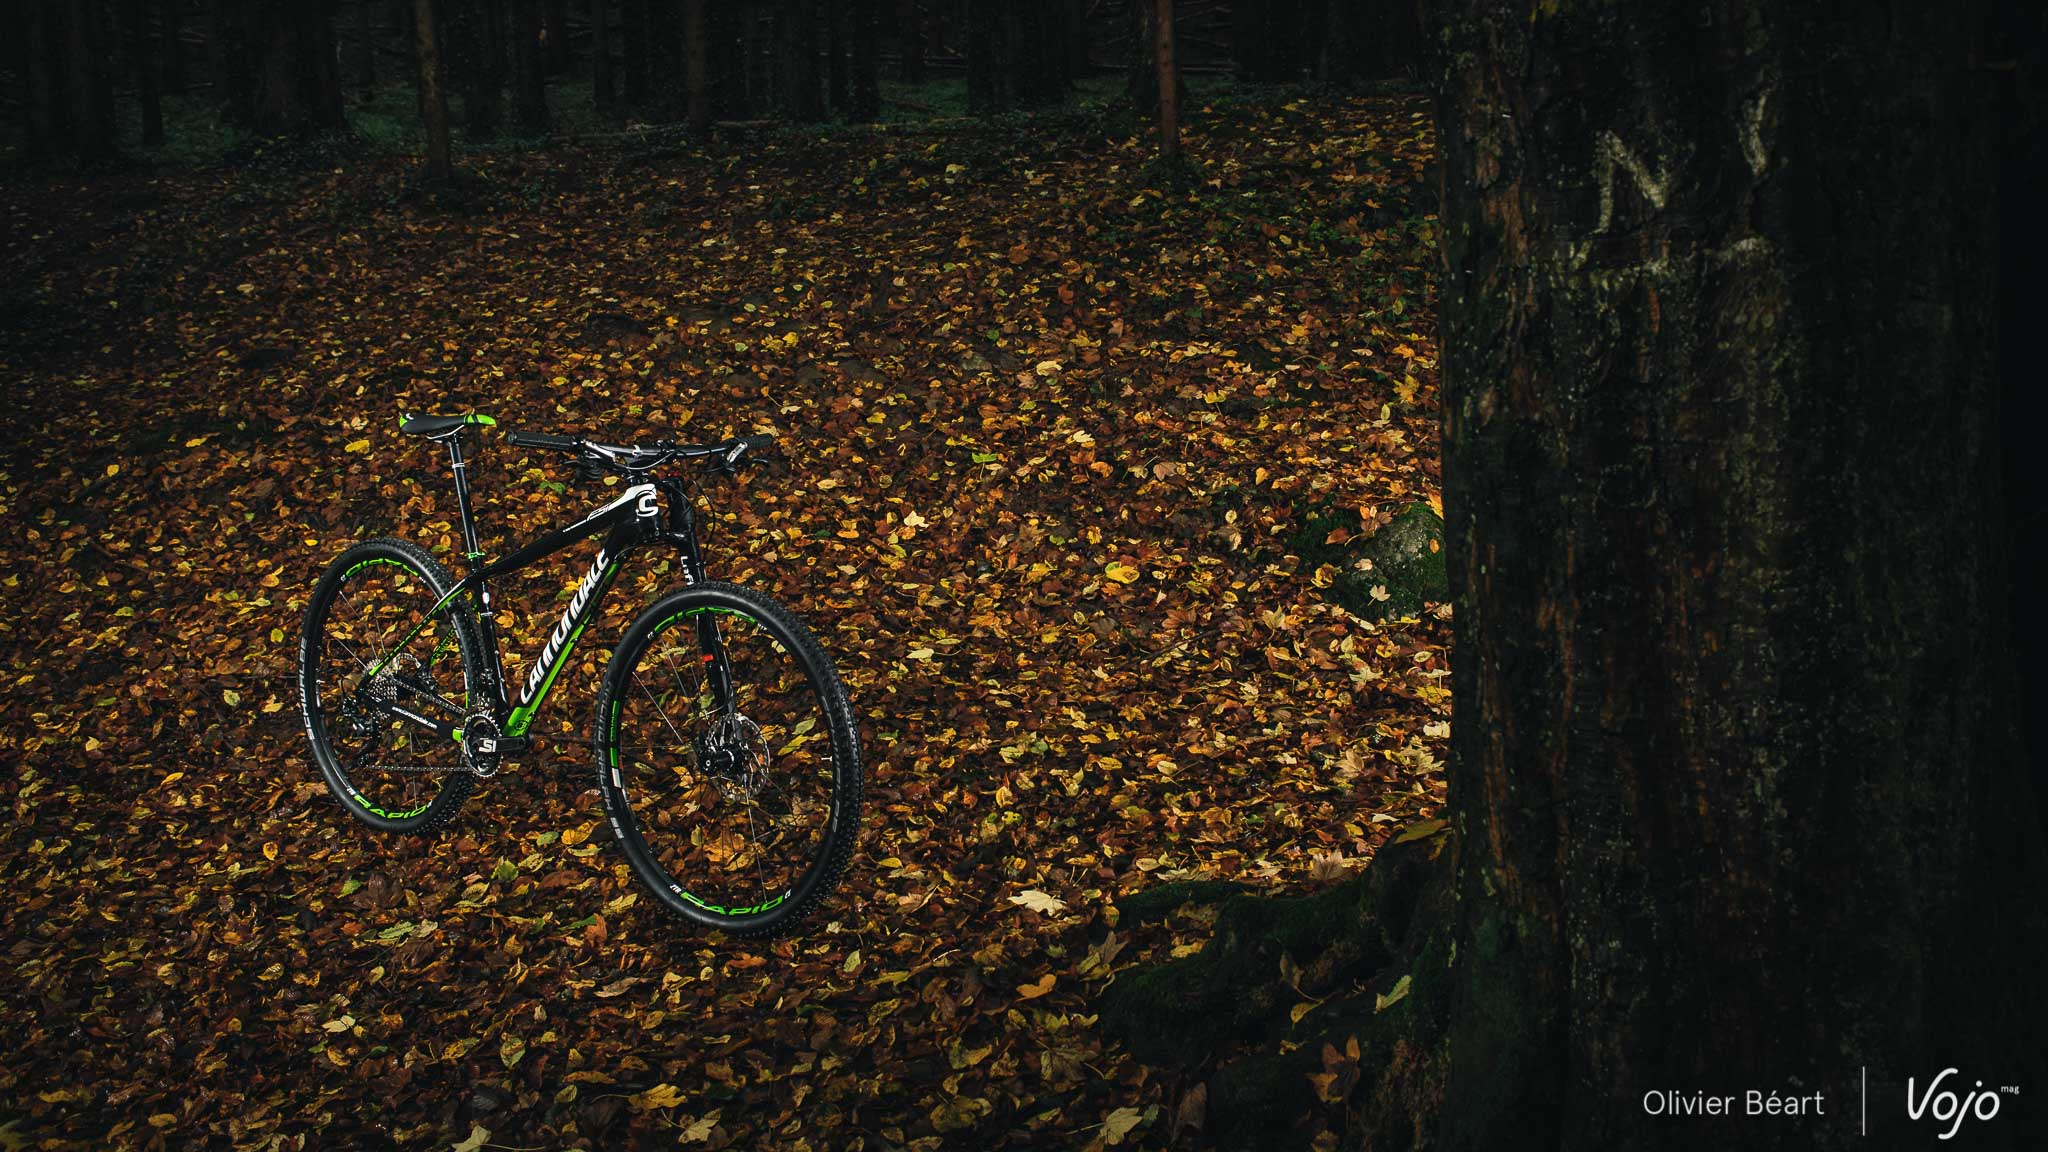 Cannondale_F-Si_Carbon_4_Test_Copyright_OBeart_VojoMag-6b